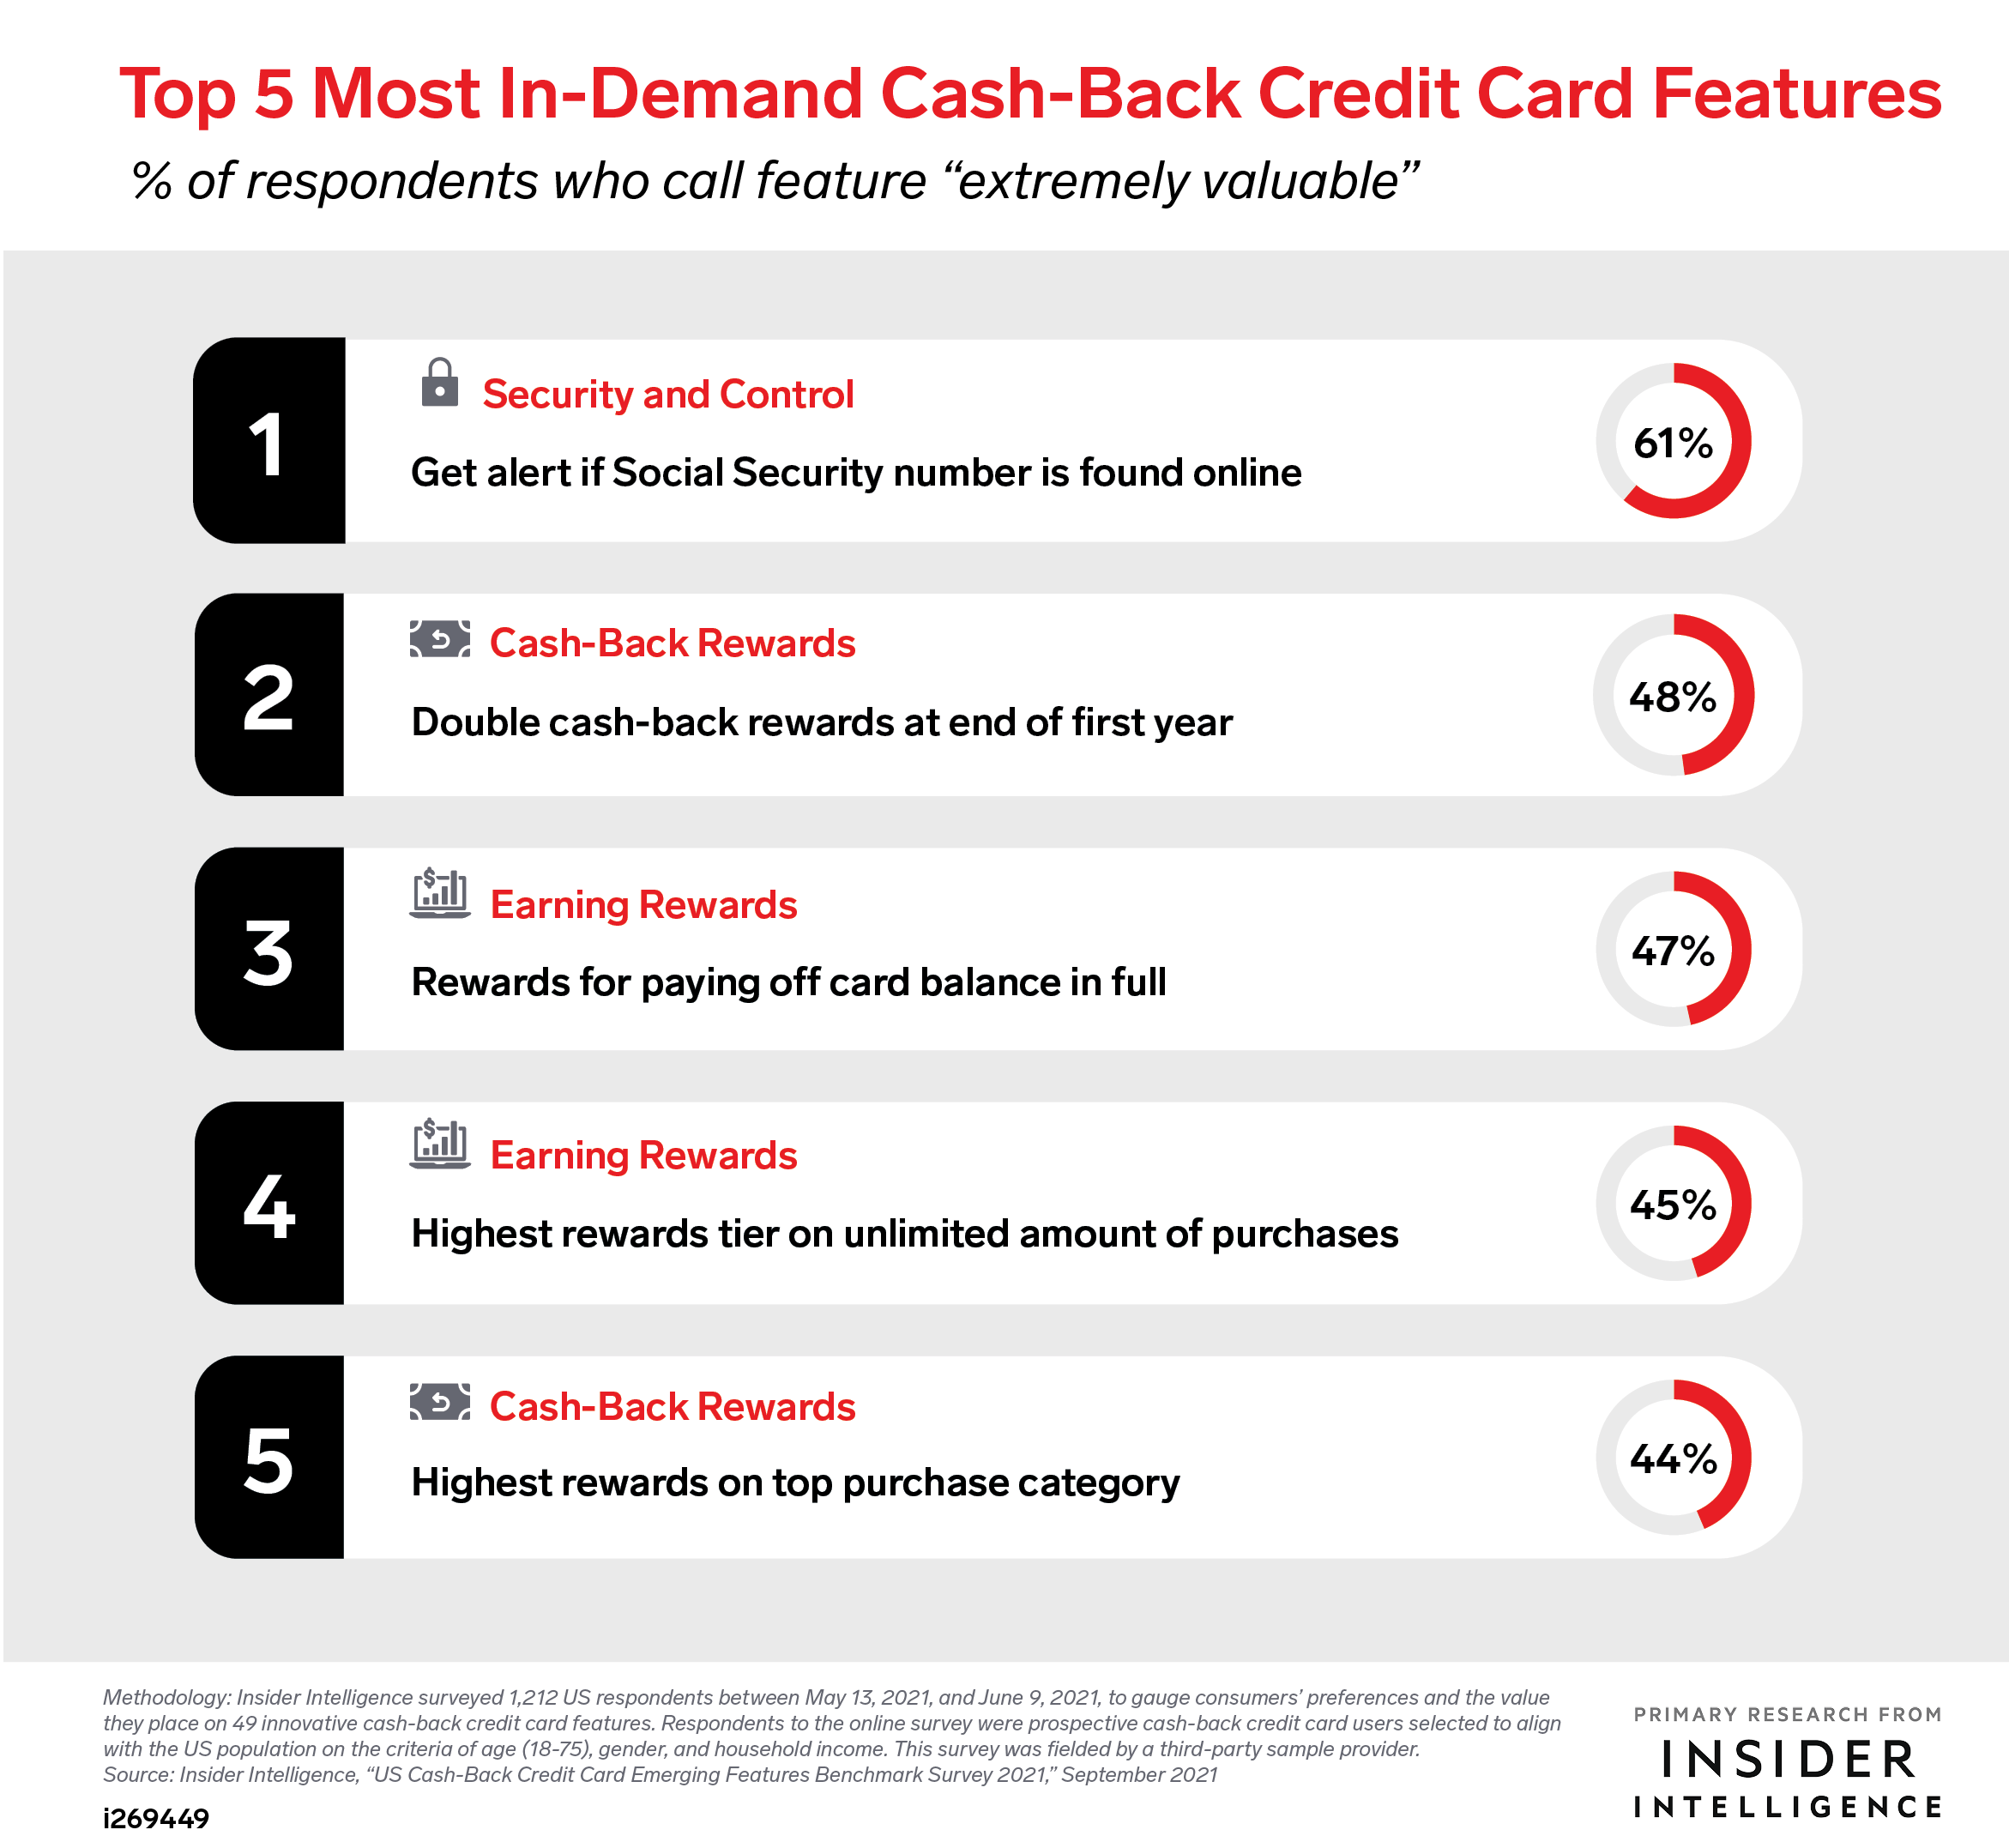 Top 5 Most In-Demand Cash-Back Credit Card Features (% of respondents who call feature